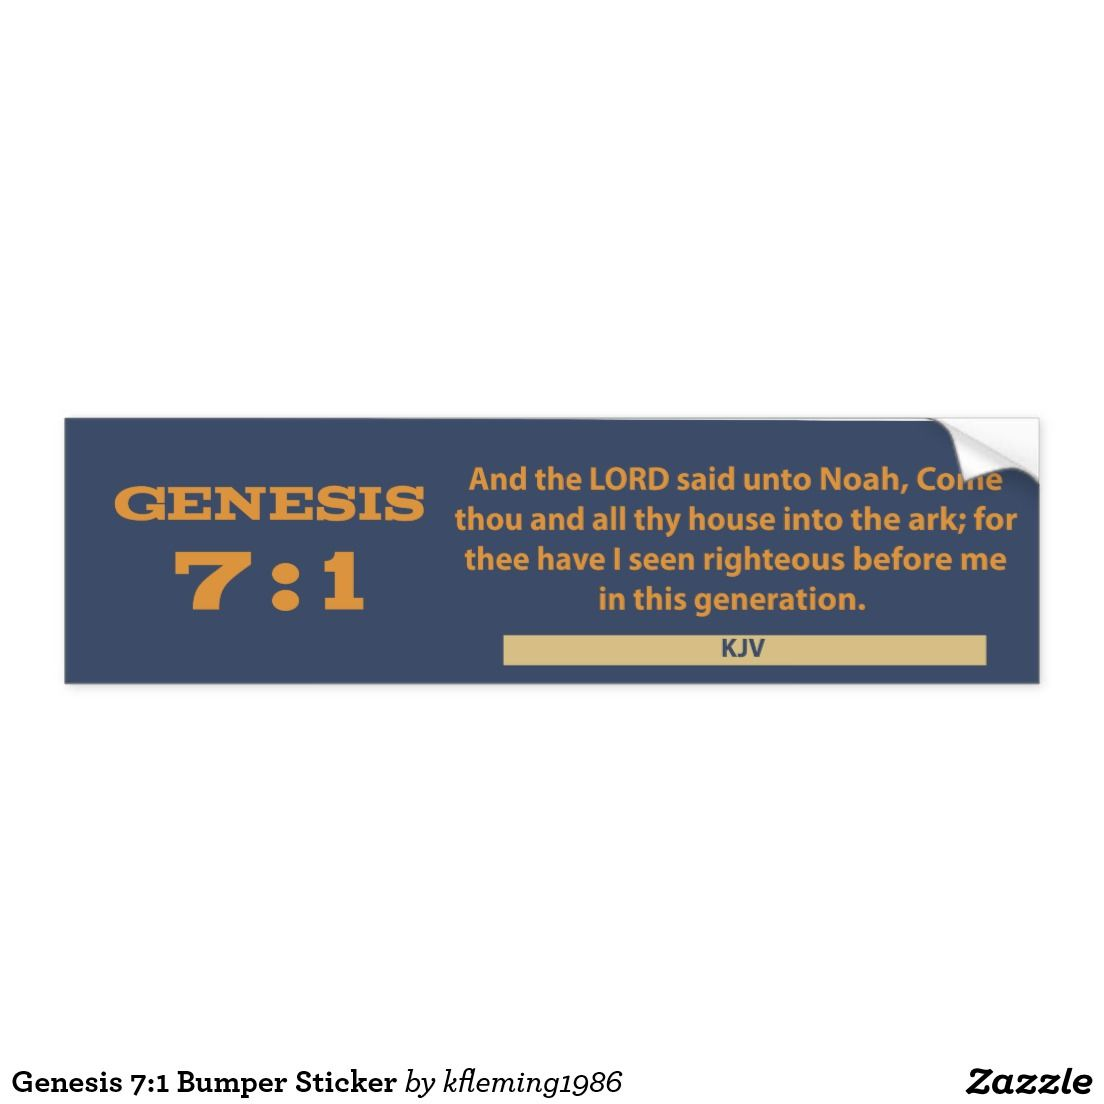 Genesis 7 1 Bumper Sticker Bumper Stickers Bumpers Strong Adhesive [ 1104 x 1104 Pixel ]